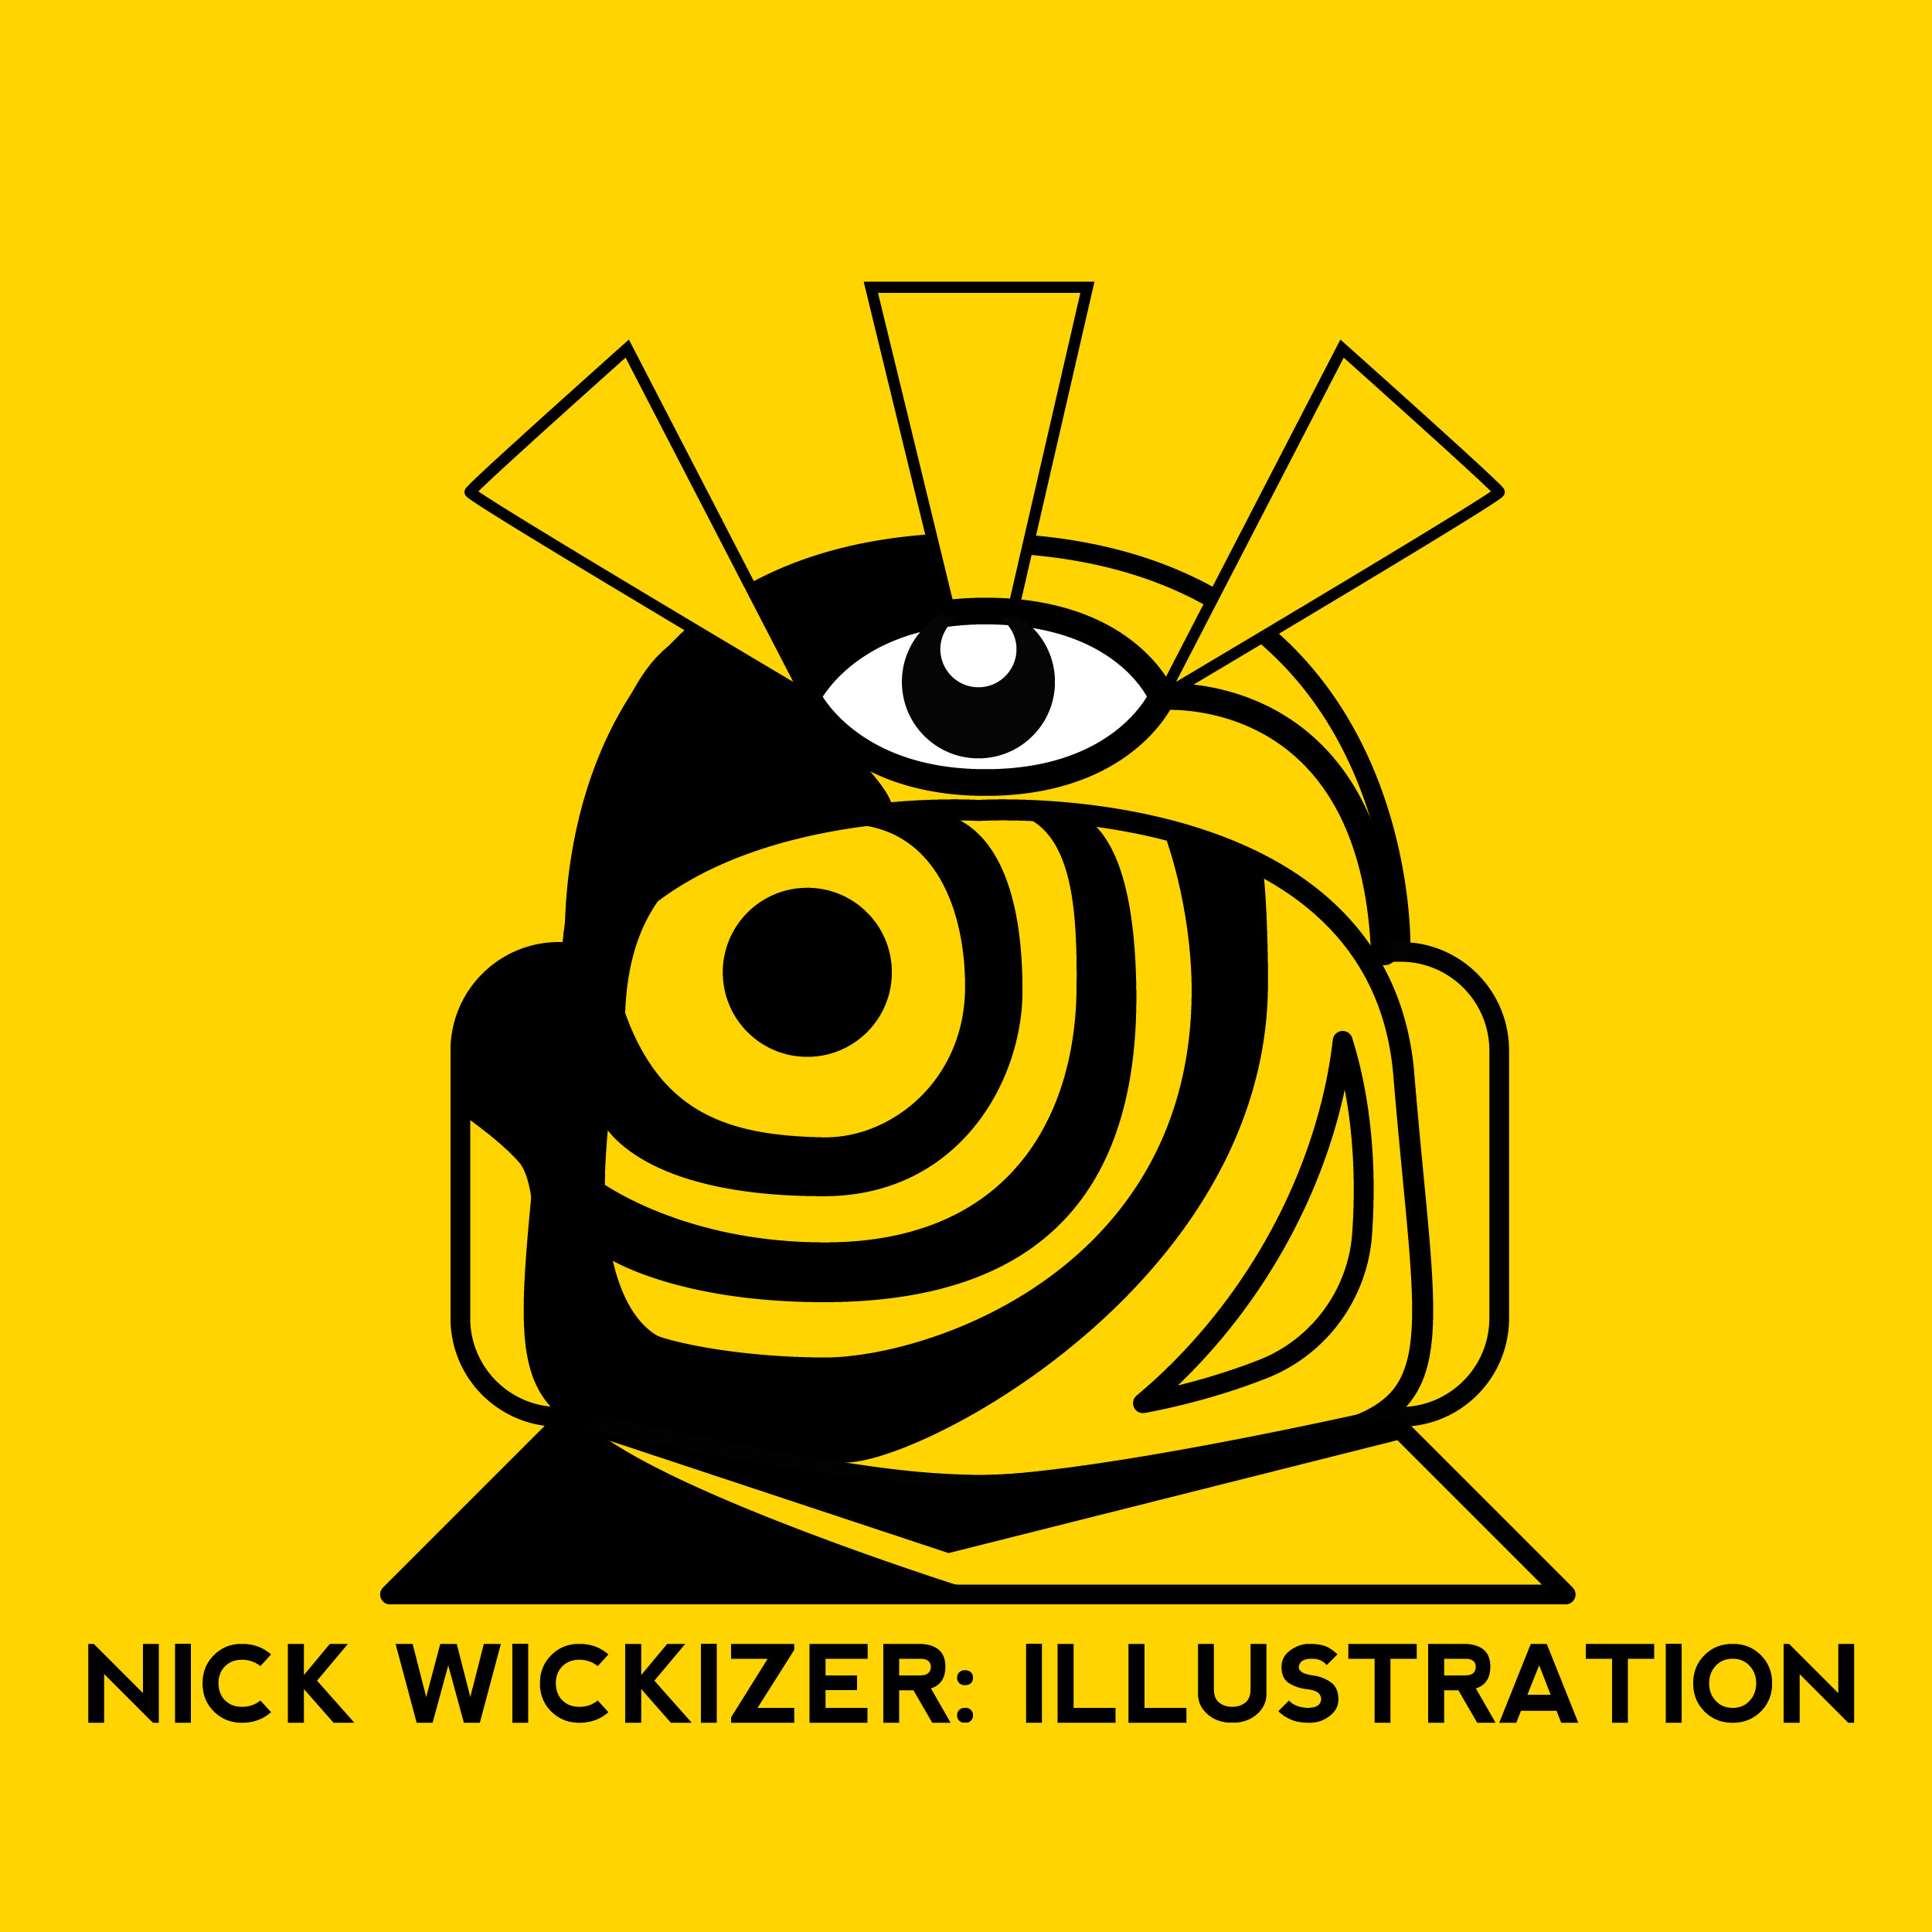 Nick Wickizer